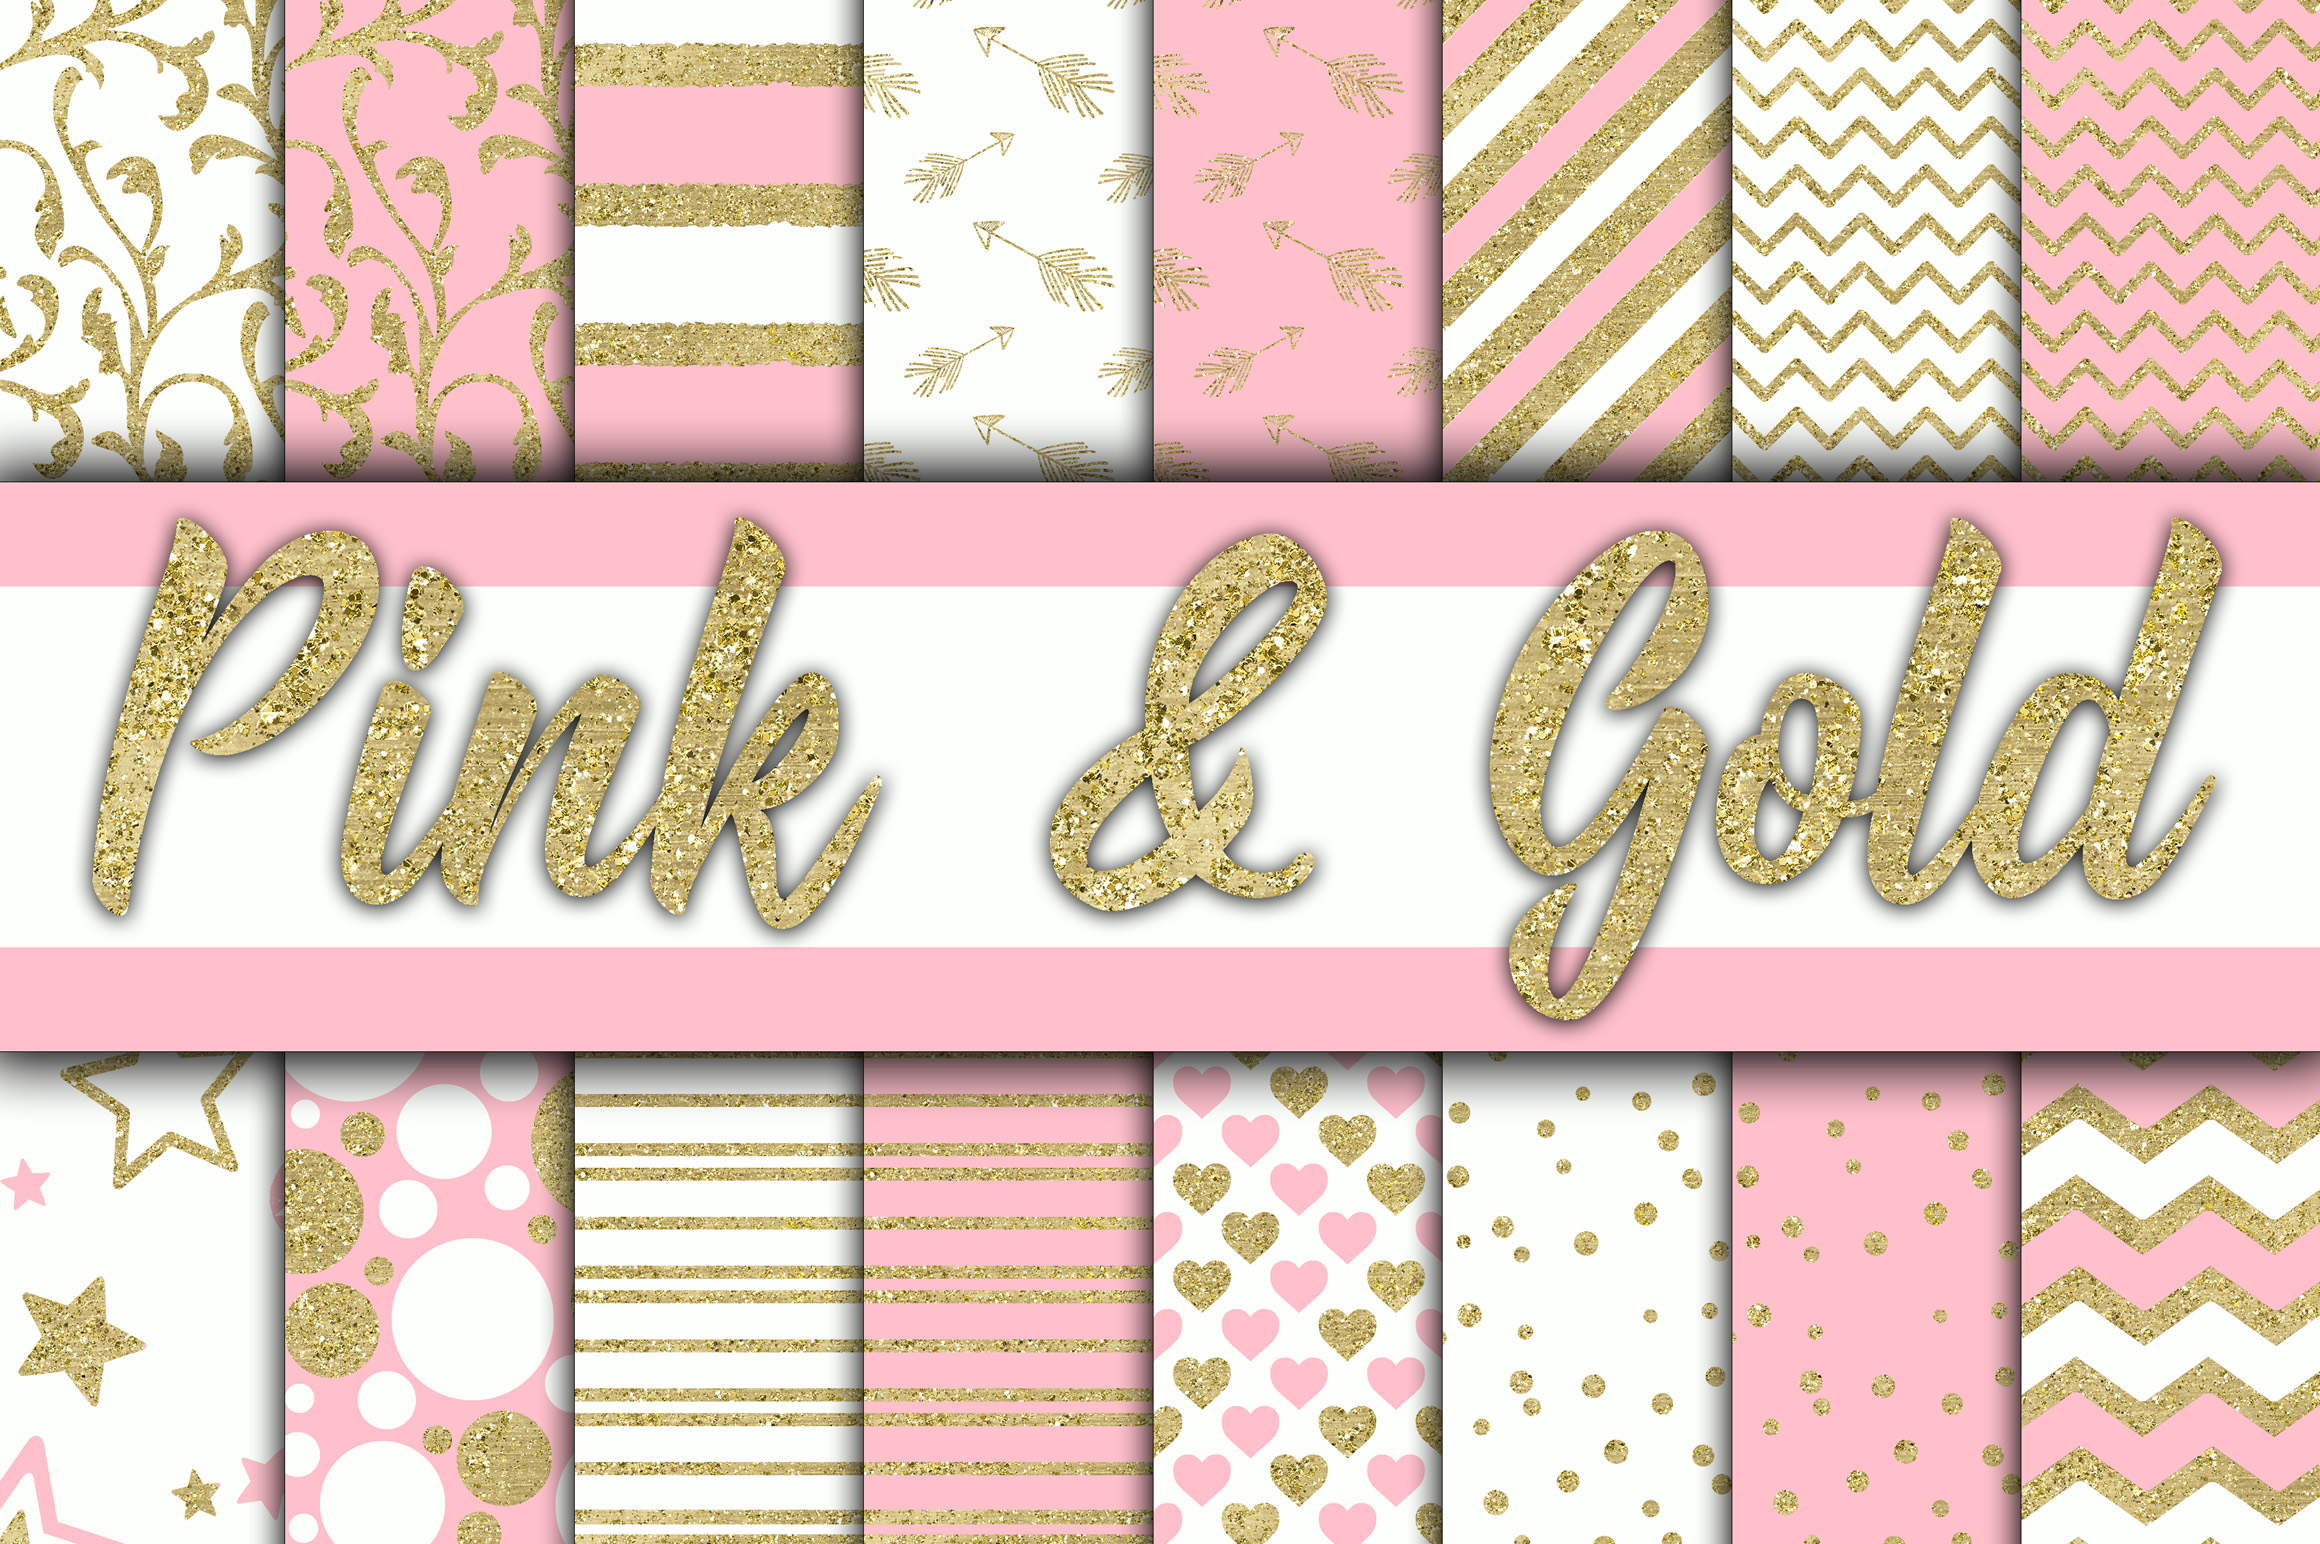 Pink and Gold Digital Paper Graphic Backgrounds By oldmarketdesigns